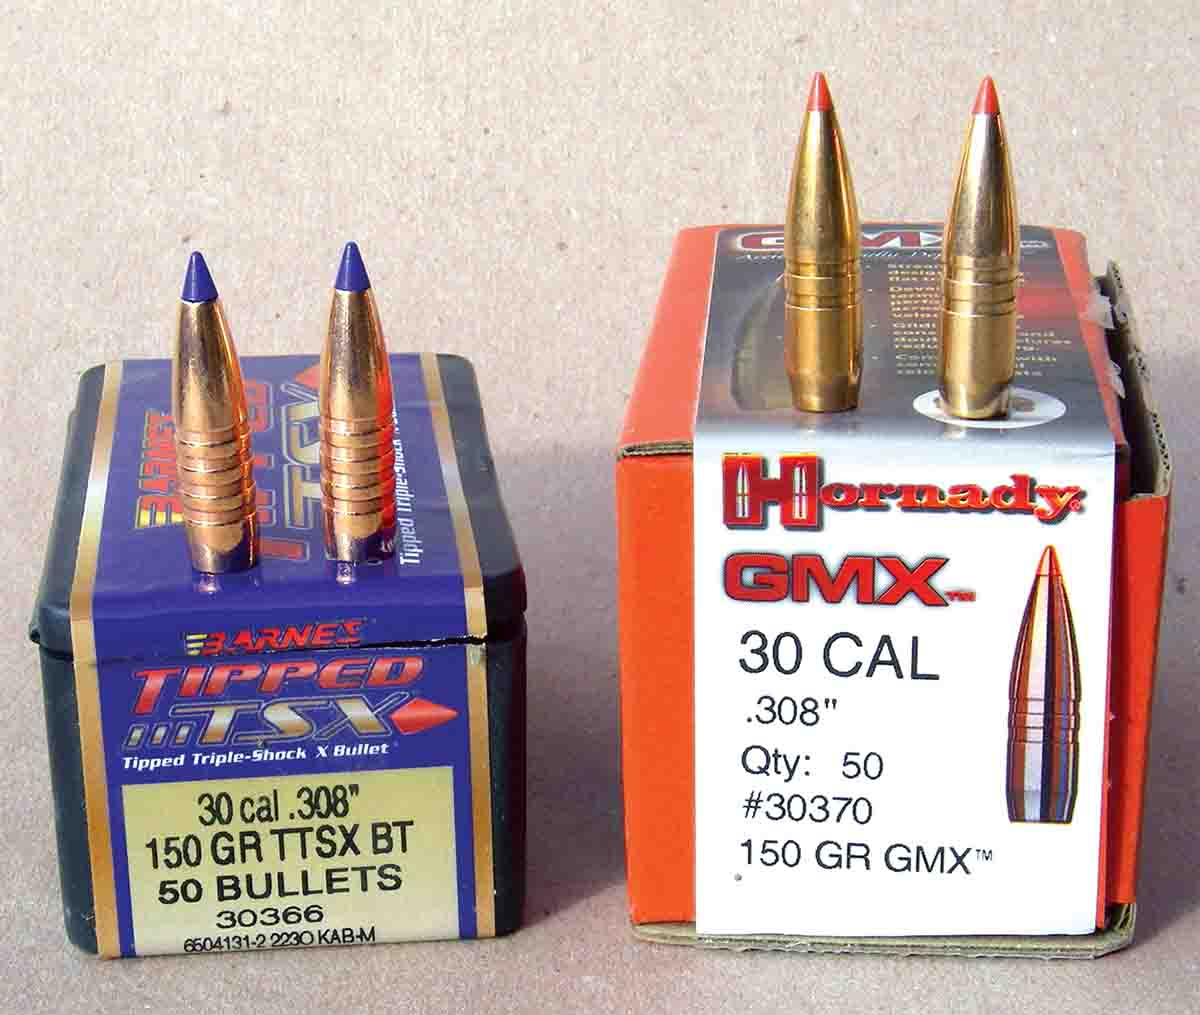 The Barnes Tipped Triple Shock X-Bullet and Hornady GMX solid copper expanding hunting bullets are popular in the .308 Winchester.